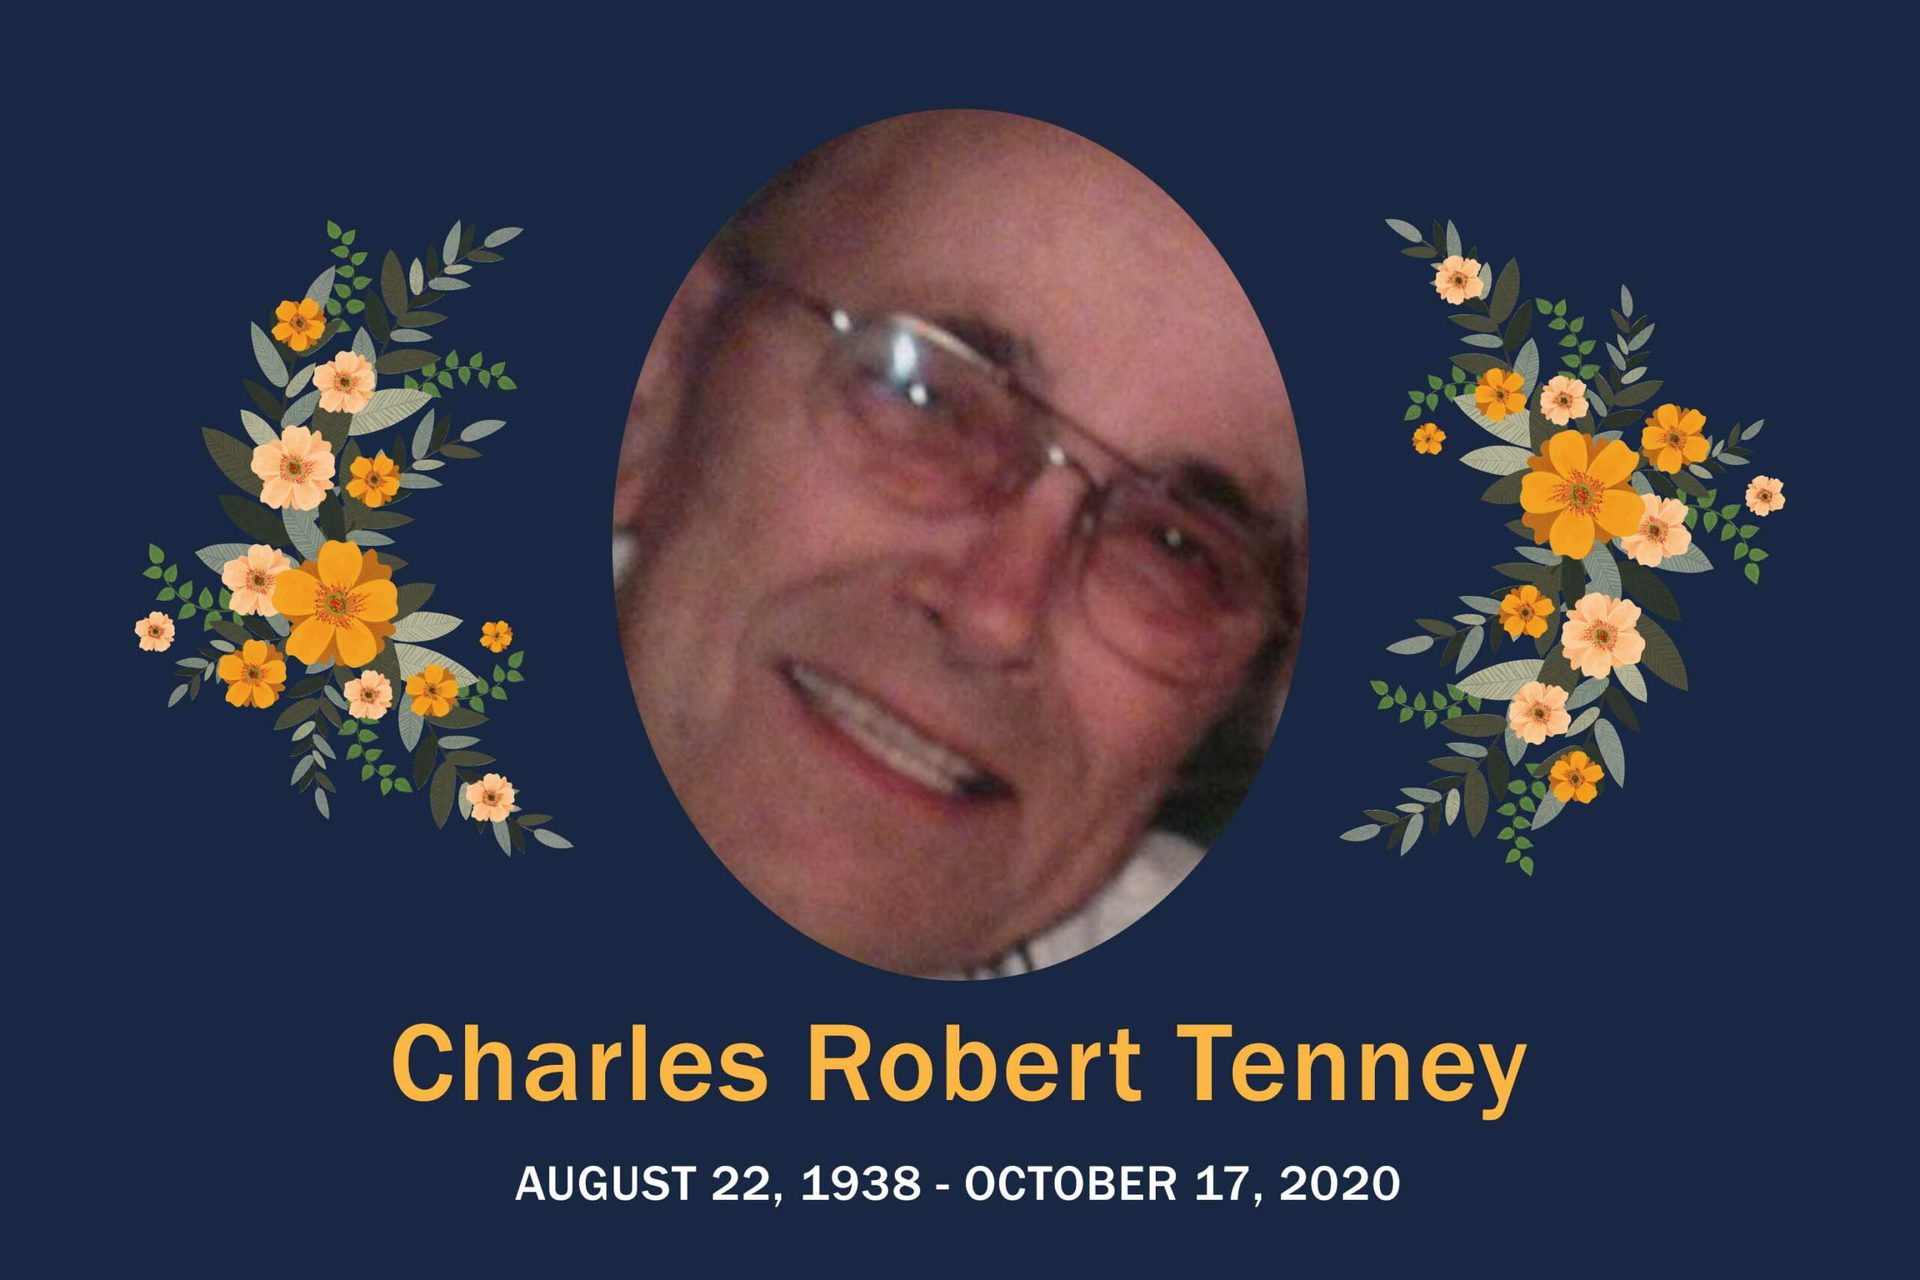 Obituary Charles Tenney